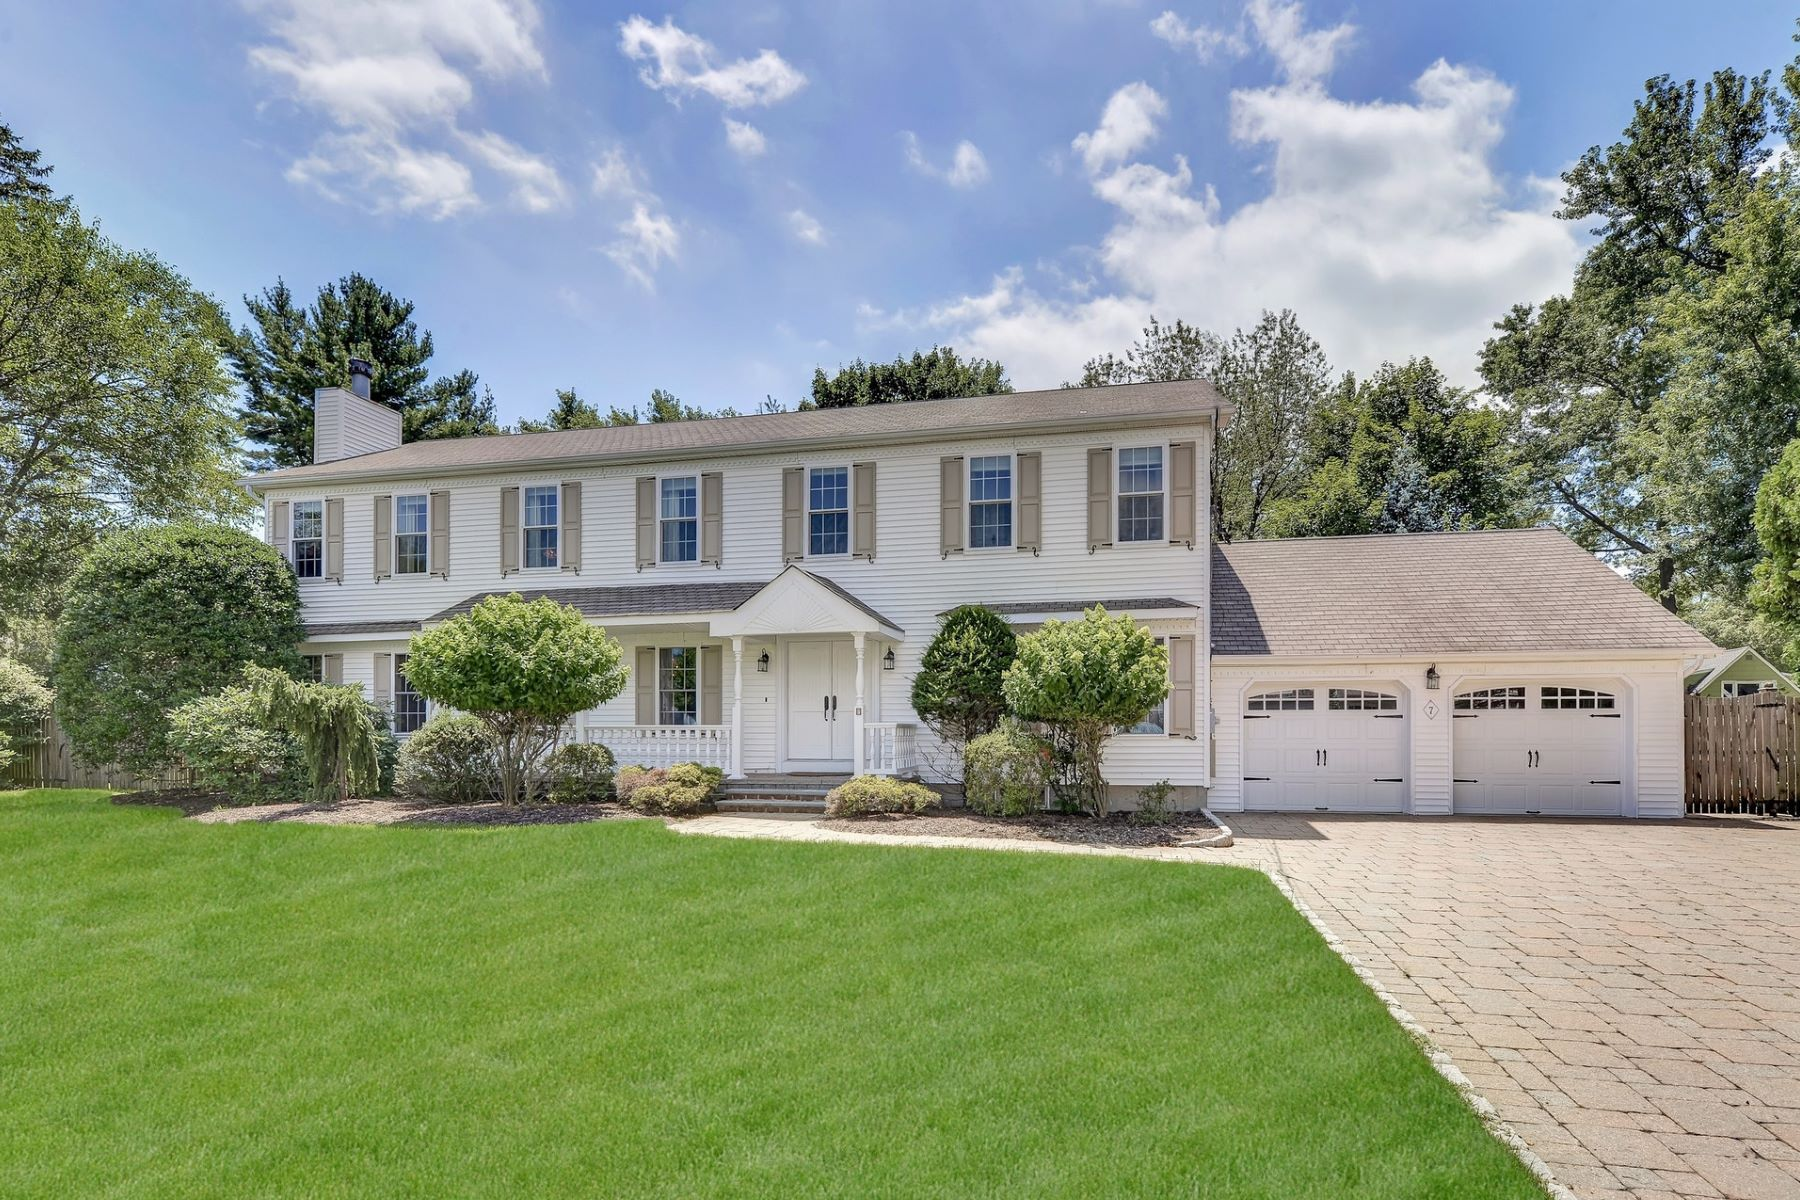 Single Family Homes for Sale at 7 Glen Place Old Tappan, New Jersey 07675 United States